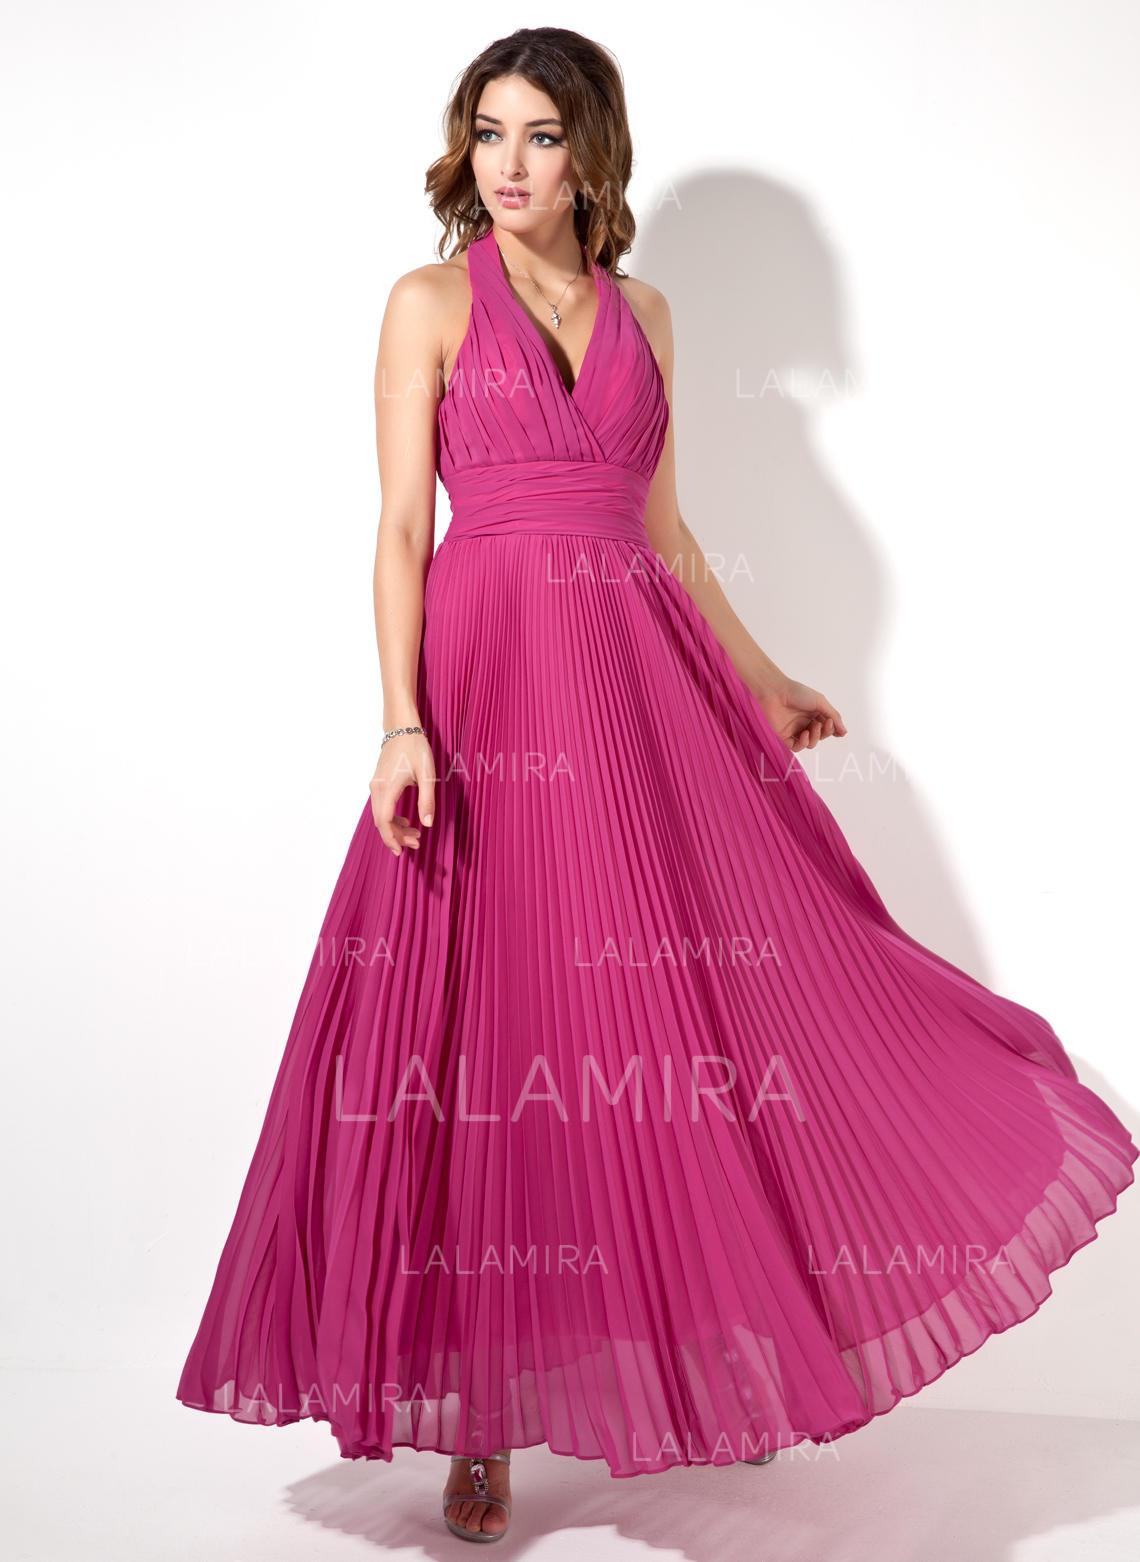 44d80170a16 Halter Chiffon Ankle-Length Evening Dresses Sleeveless (017022526). Loading  zoom